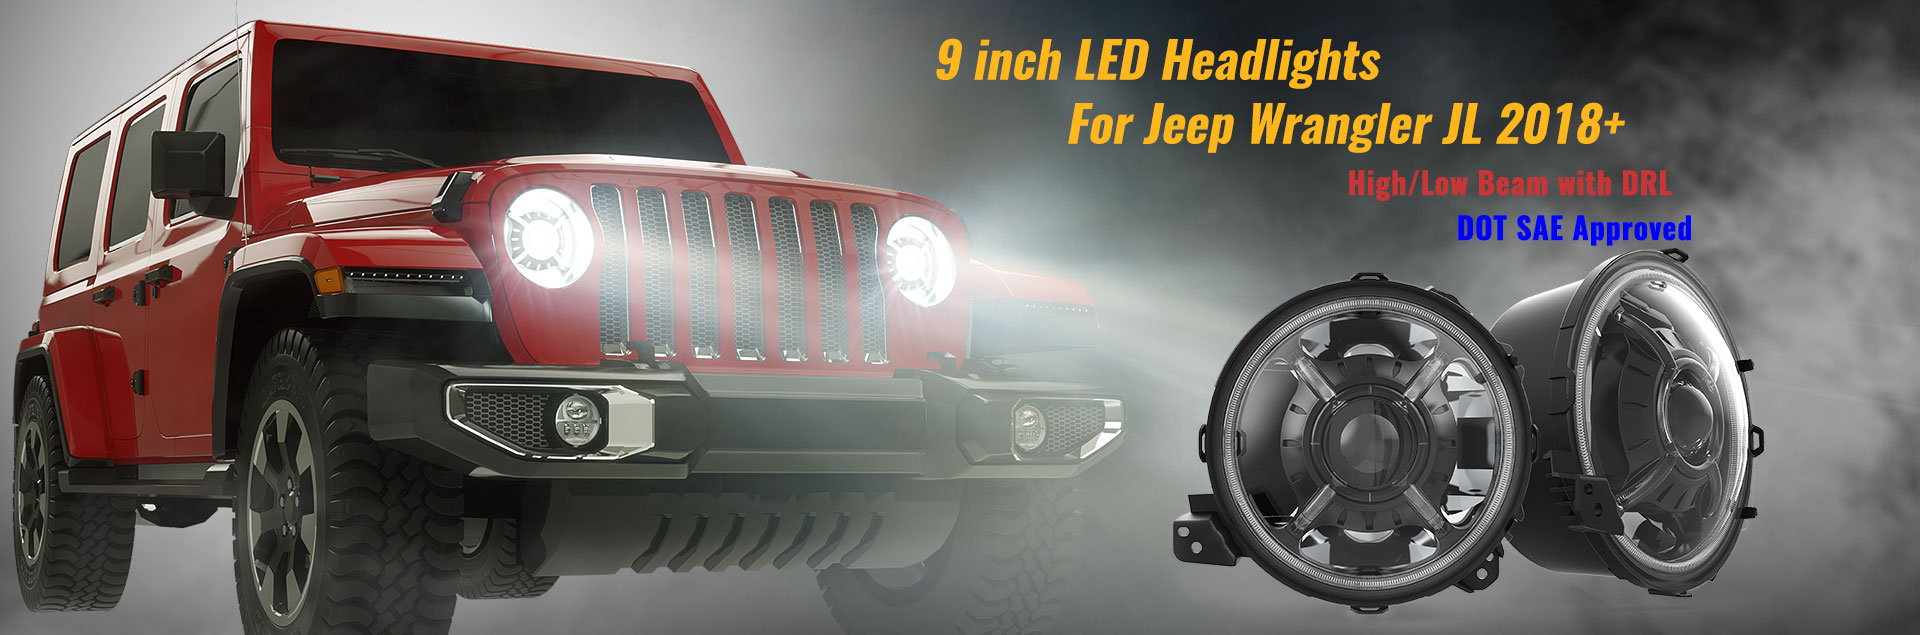 9 inch Halo Led Headlight for Jeep Wrangler JL